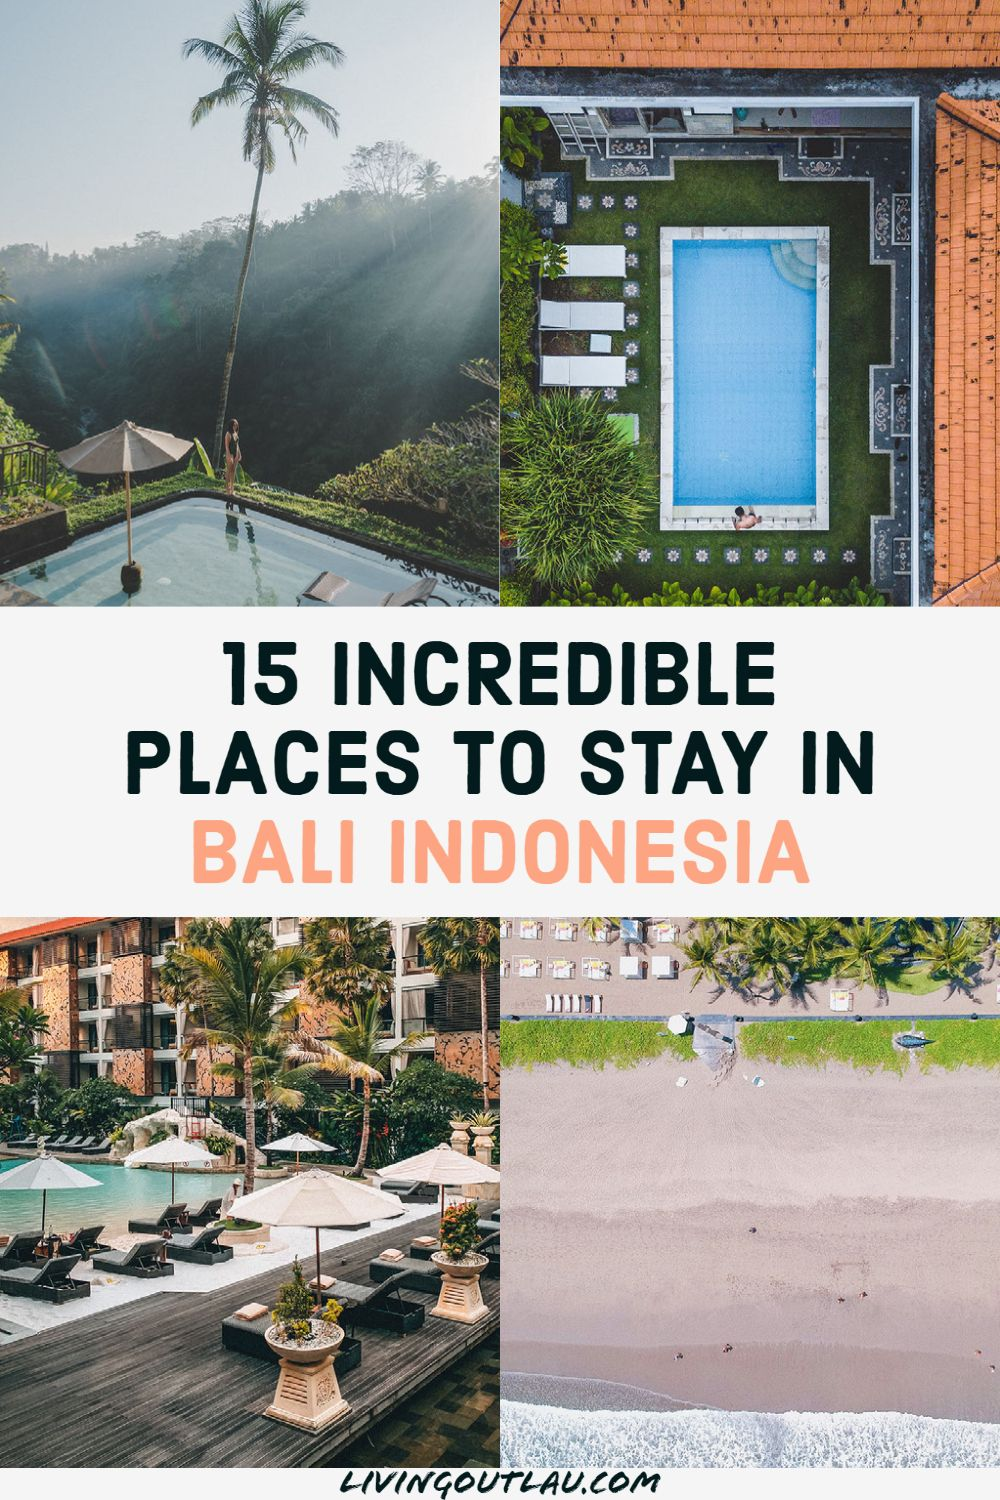 15 Stunning Airbnbs In Bali You Cannot Miss Livingoutlau In 2021 Bali Travel Indonesia Travel Travel Destinations Asia